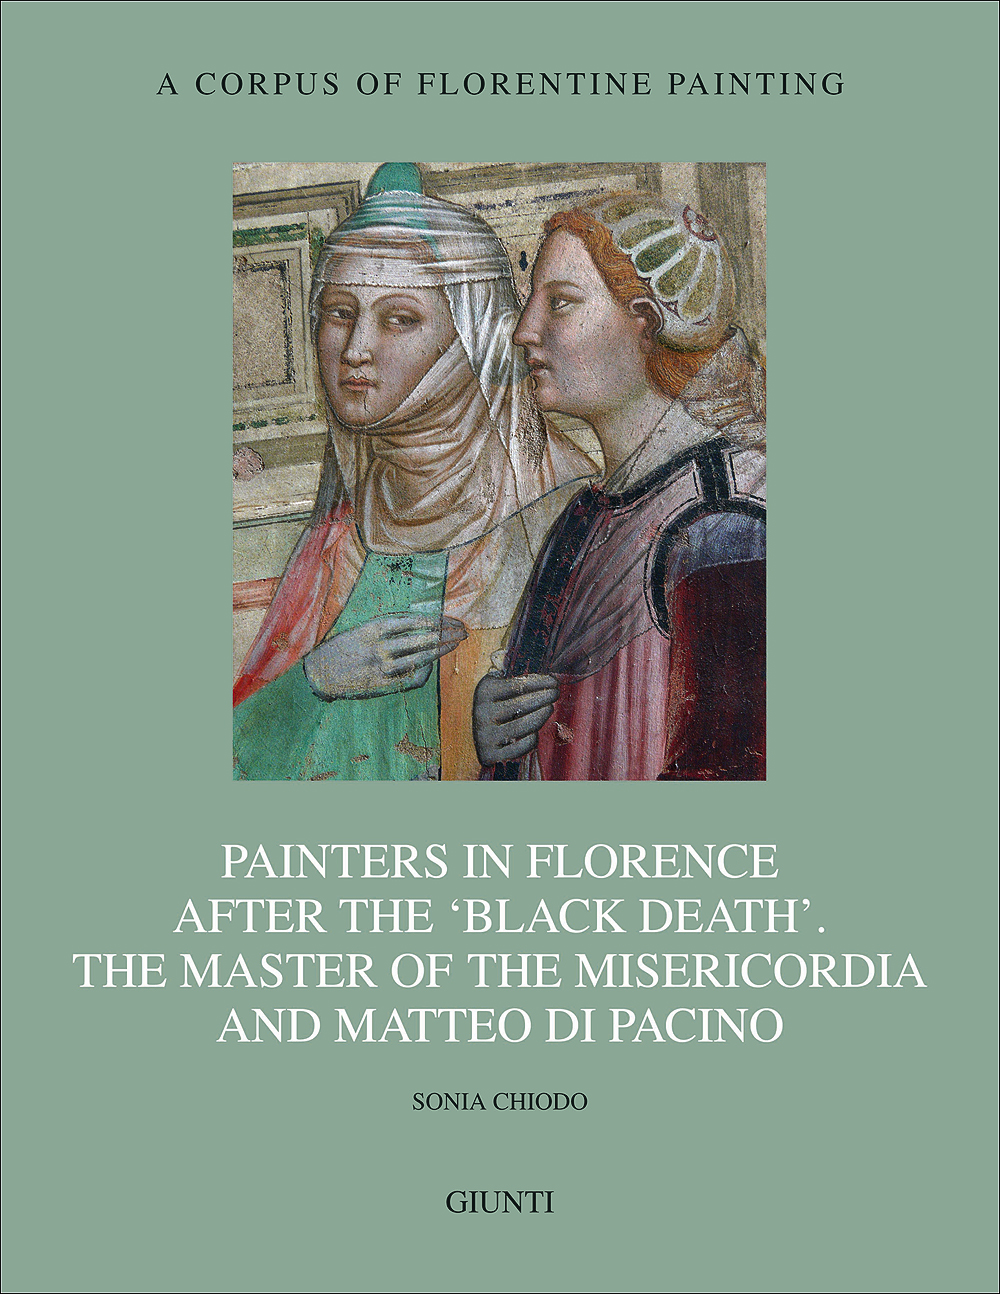 Painters in Florence after the 'black death'. The Master of the Misericordia and Matteo di Pacino